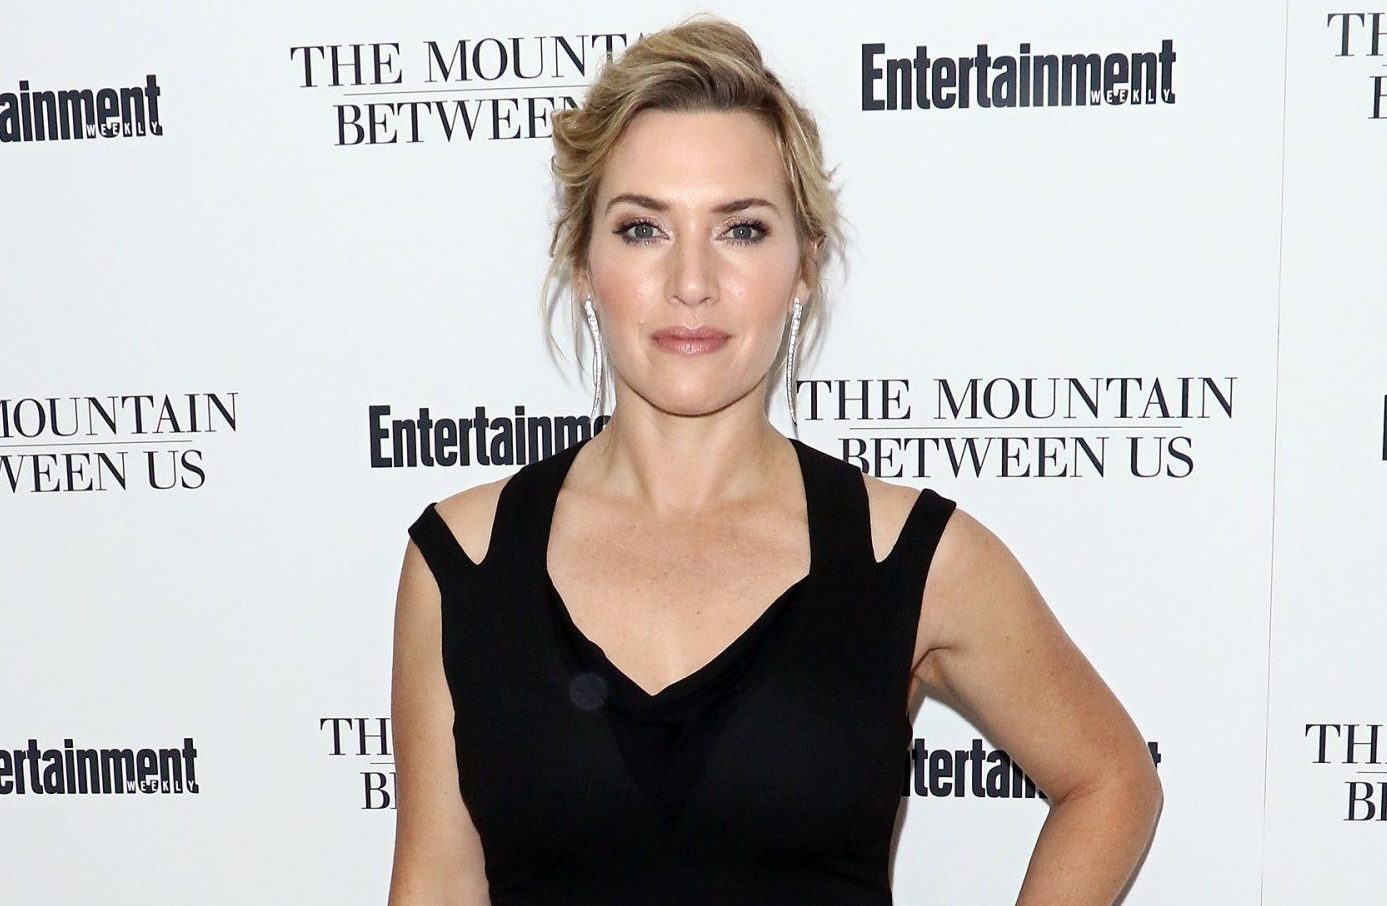 Kate Winslet heard rumours about Harvey Weinstein: 'Maybe we have all been naïve'